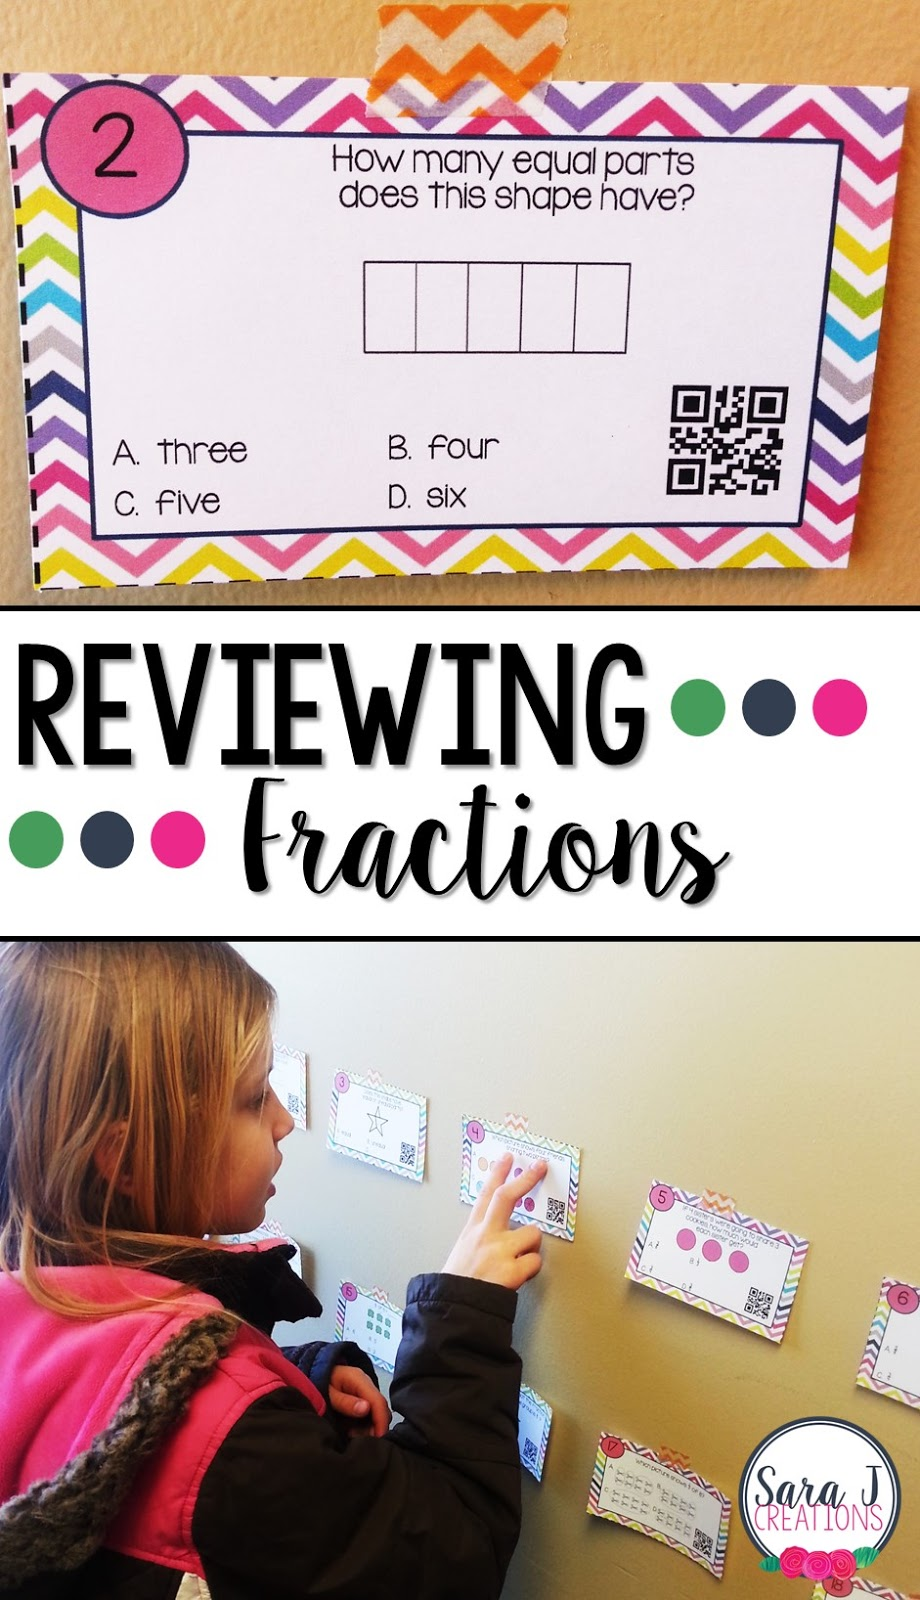 Adding QR codes makes practicing fractions activities even more fun and interactive.